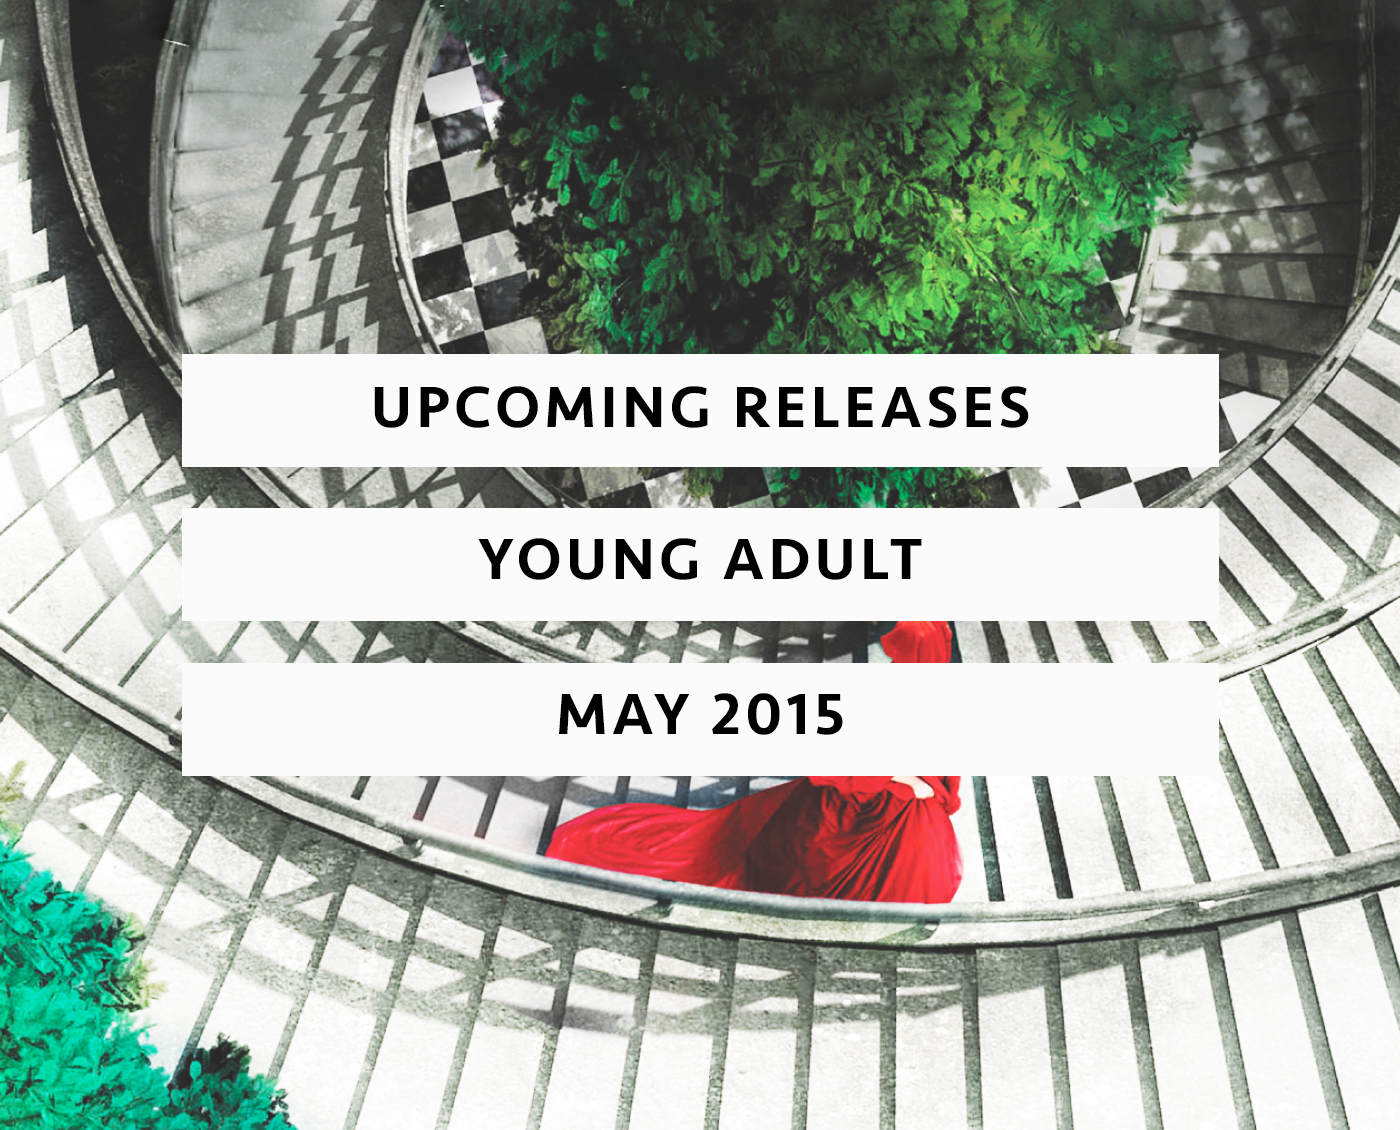 Upcoming Releases May 2015